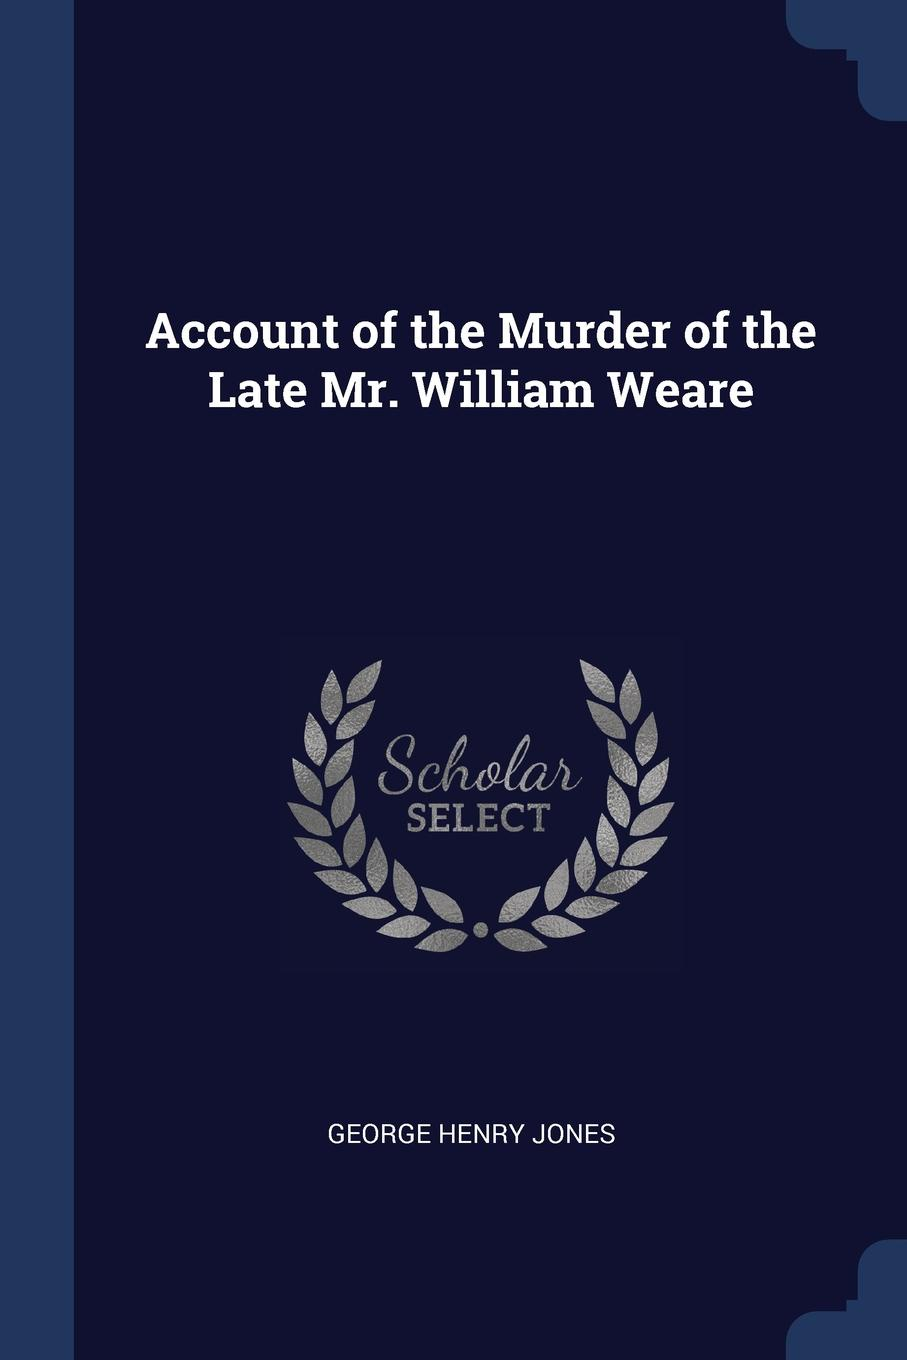 Account of the Murder of the Late Mr. William Weare. George Henry Jones